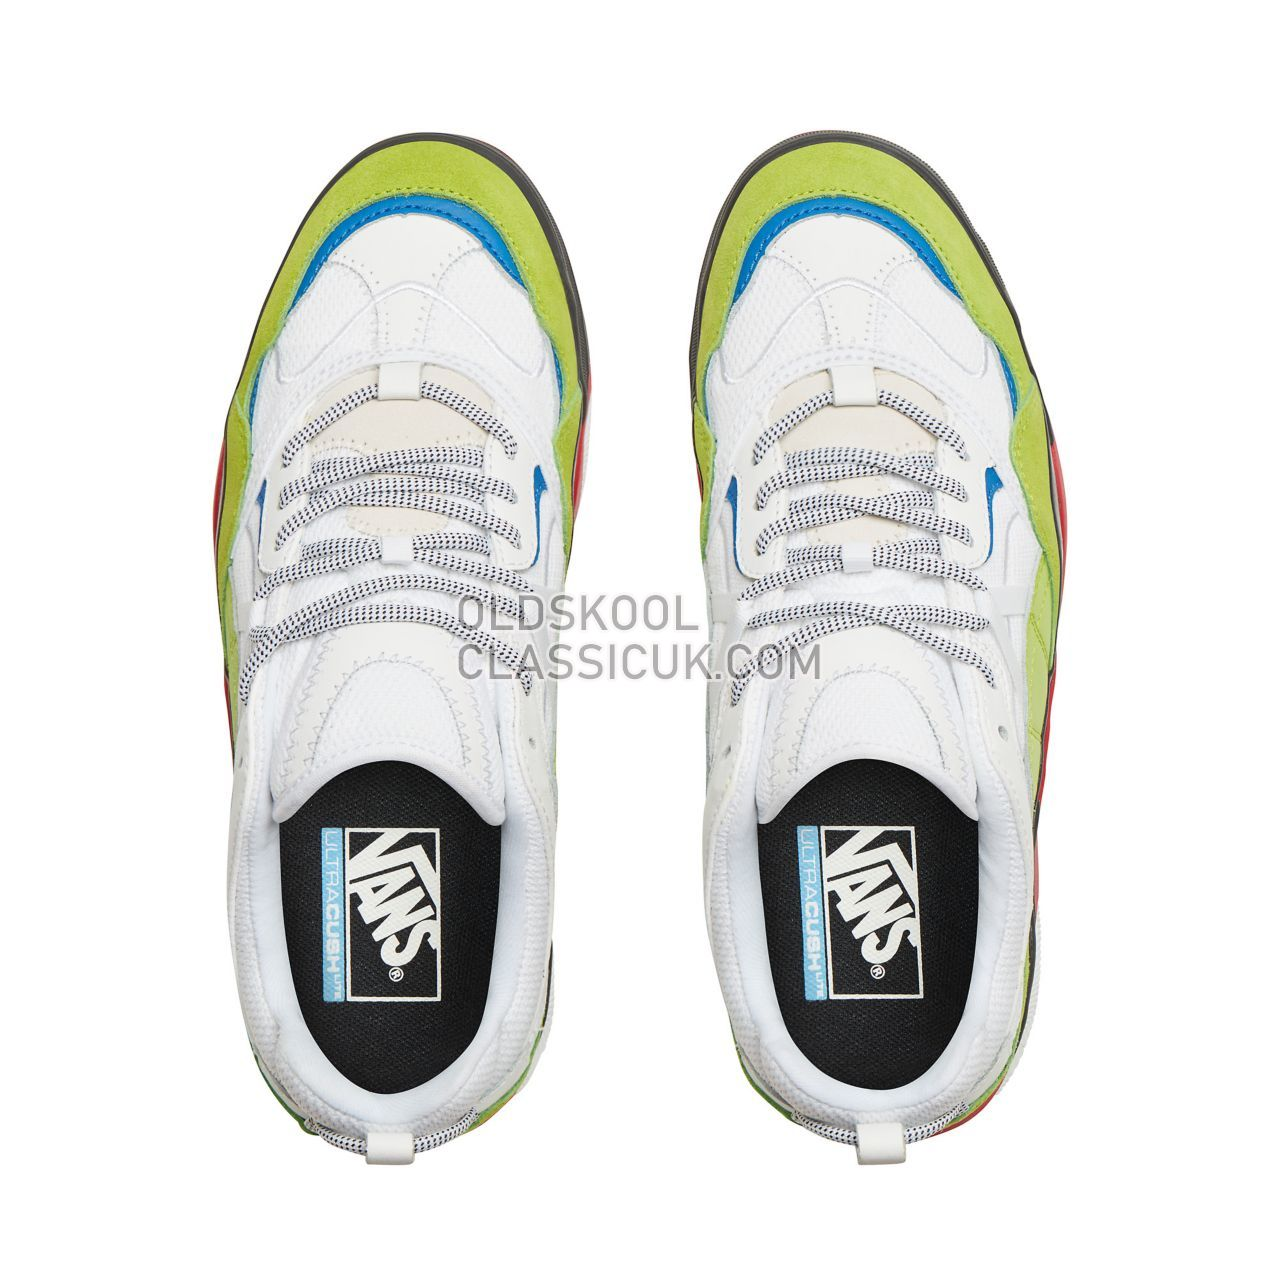 Vans Varix WC Sneakers Mens True White/Lime Green/Tango Red VN0A3WLNT44 Shoes